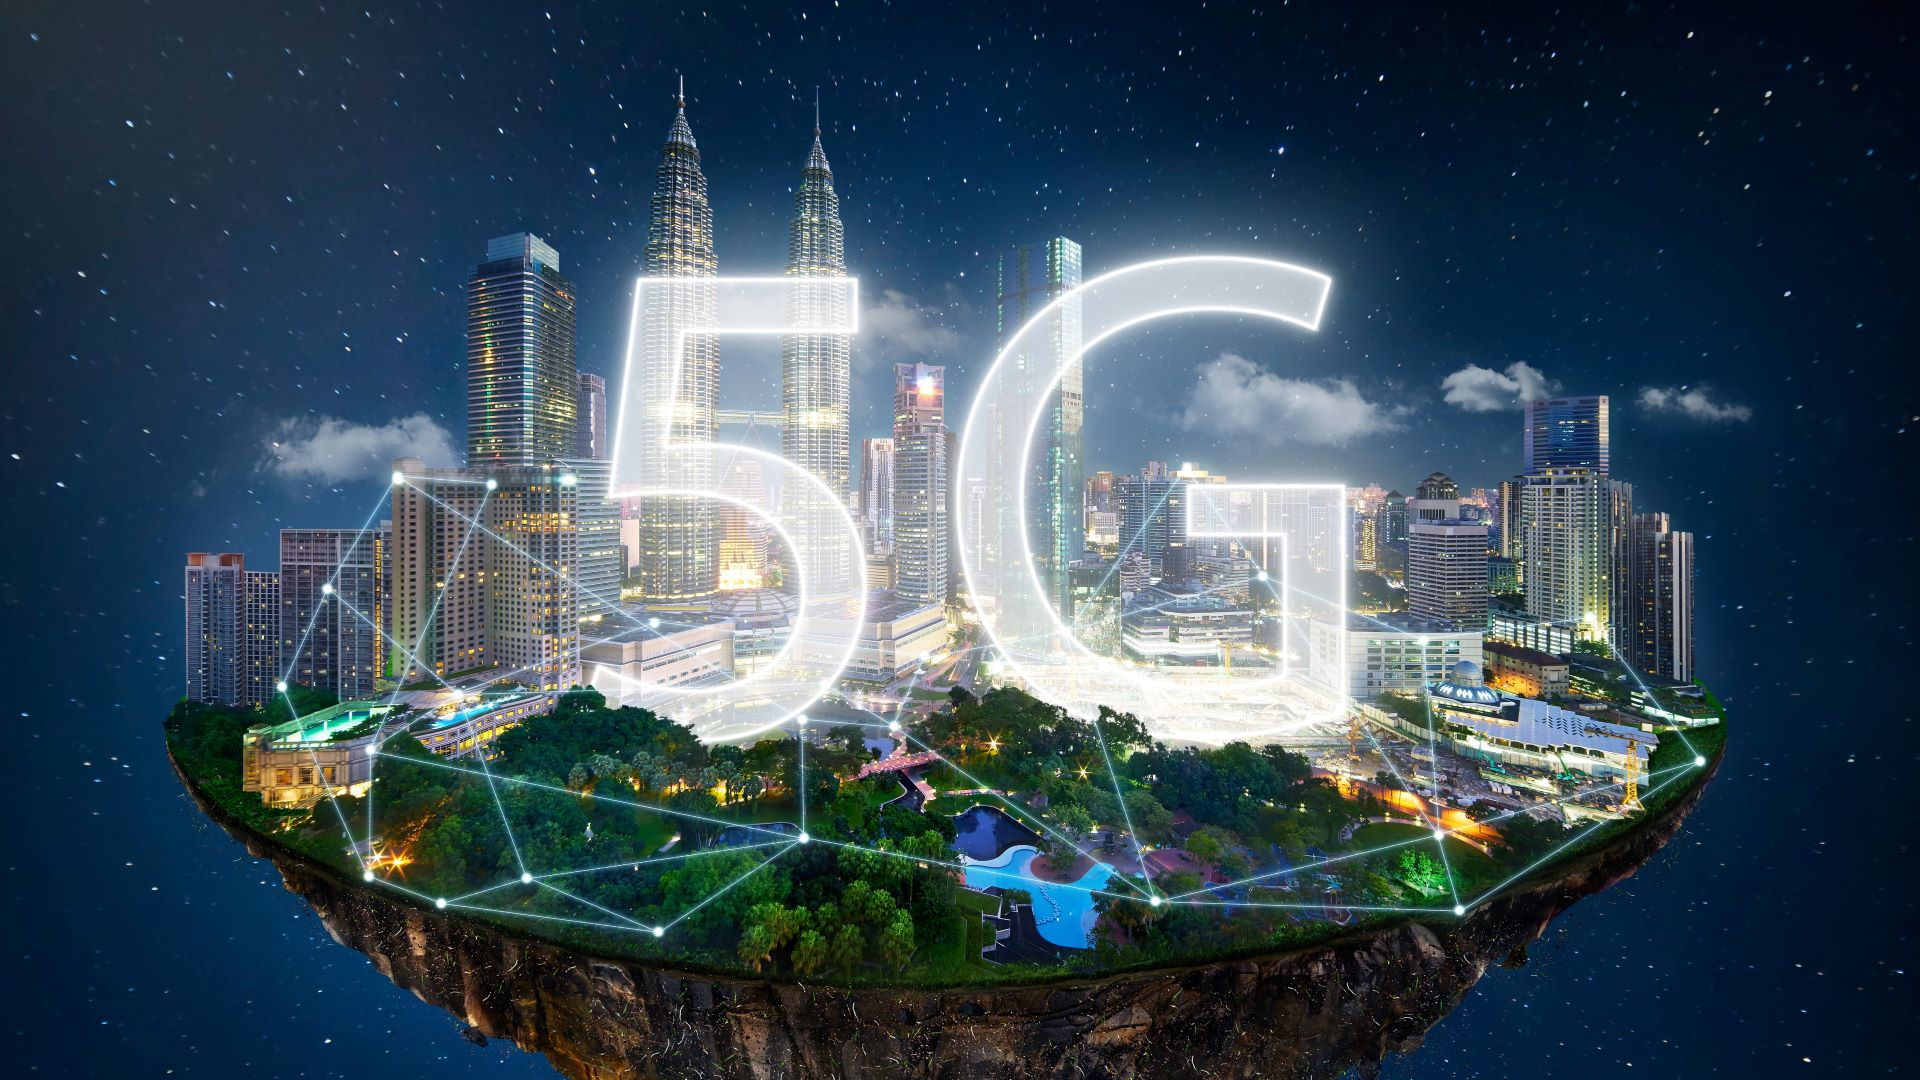 Artistic rendering of 5G connecting cities and people online through video